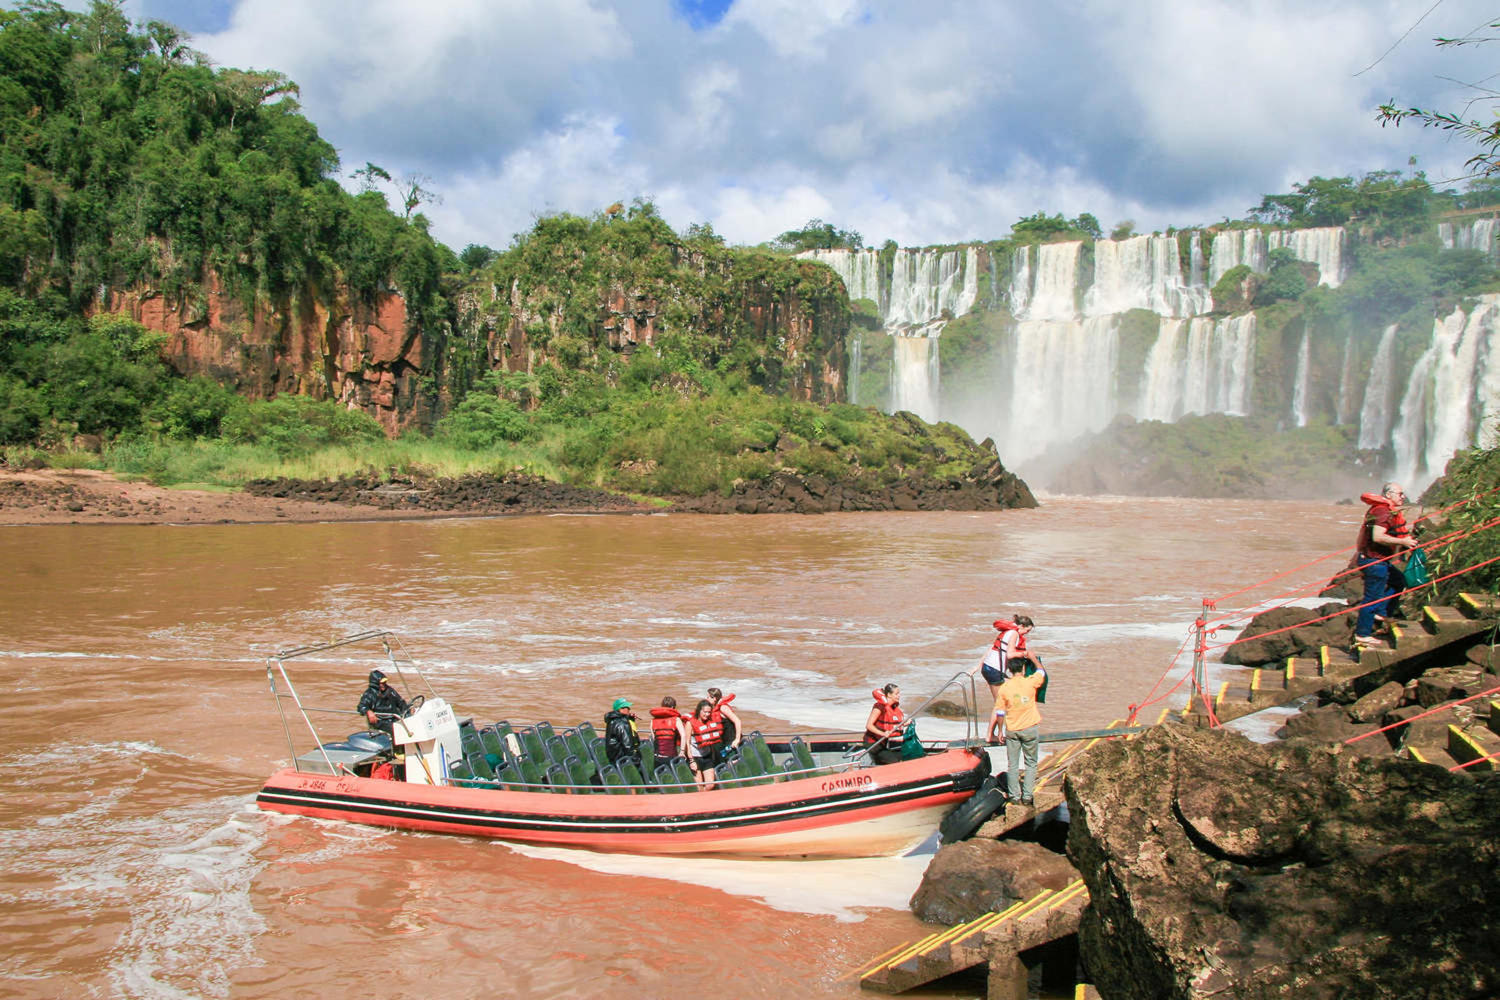 Tourists visiting the Iguassu falls